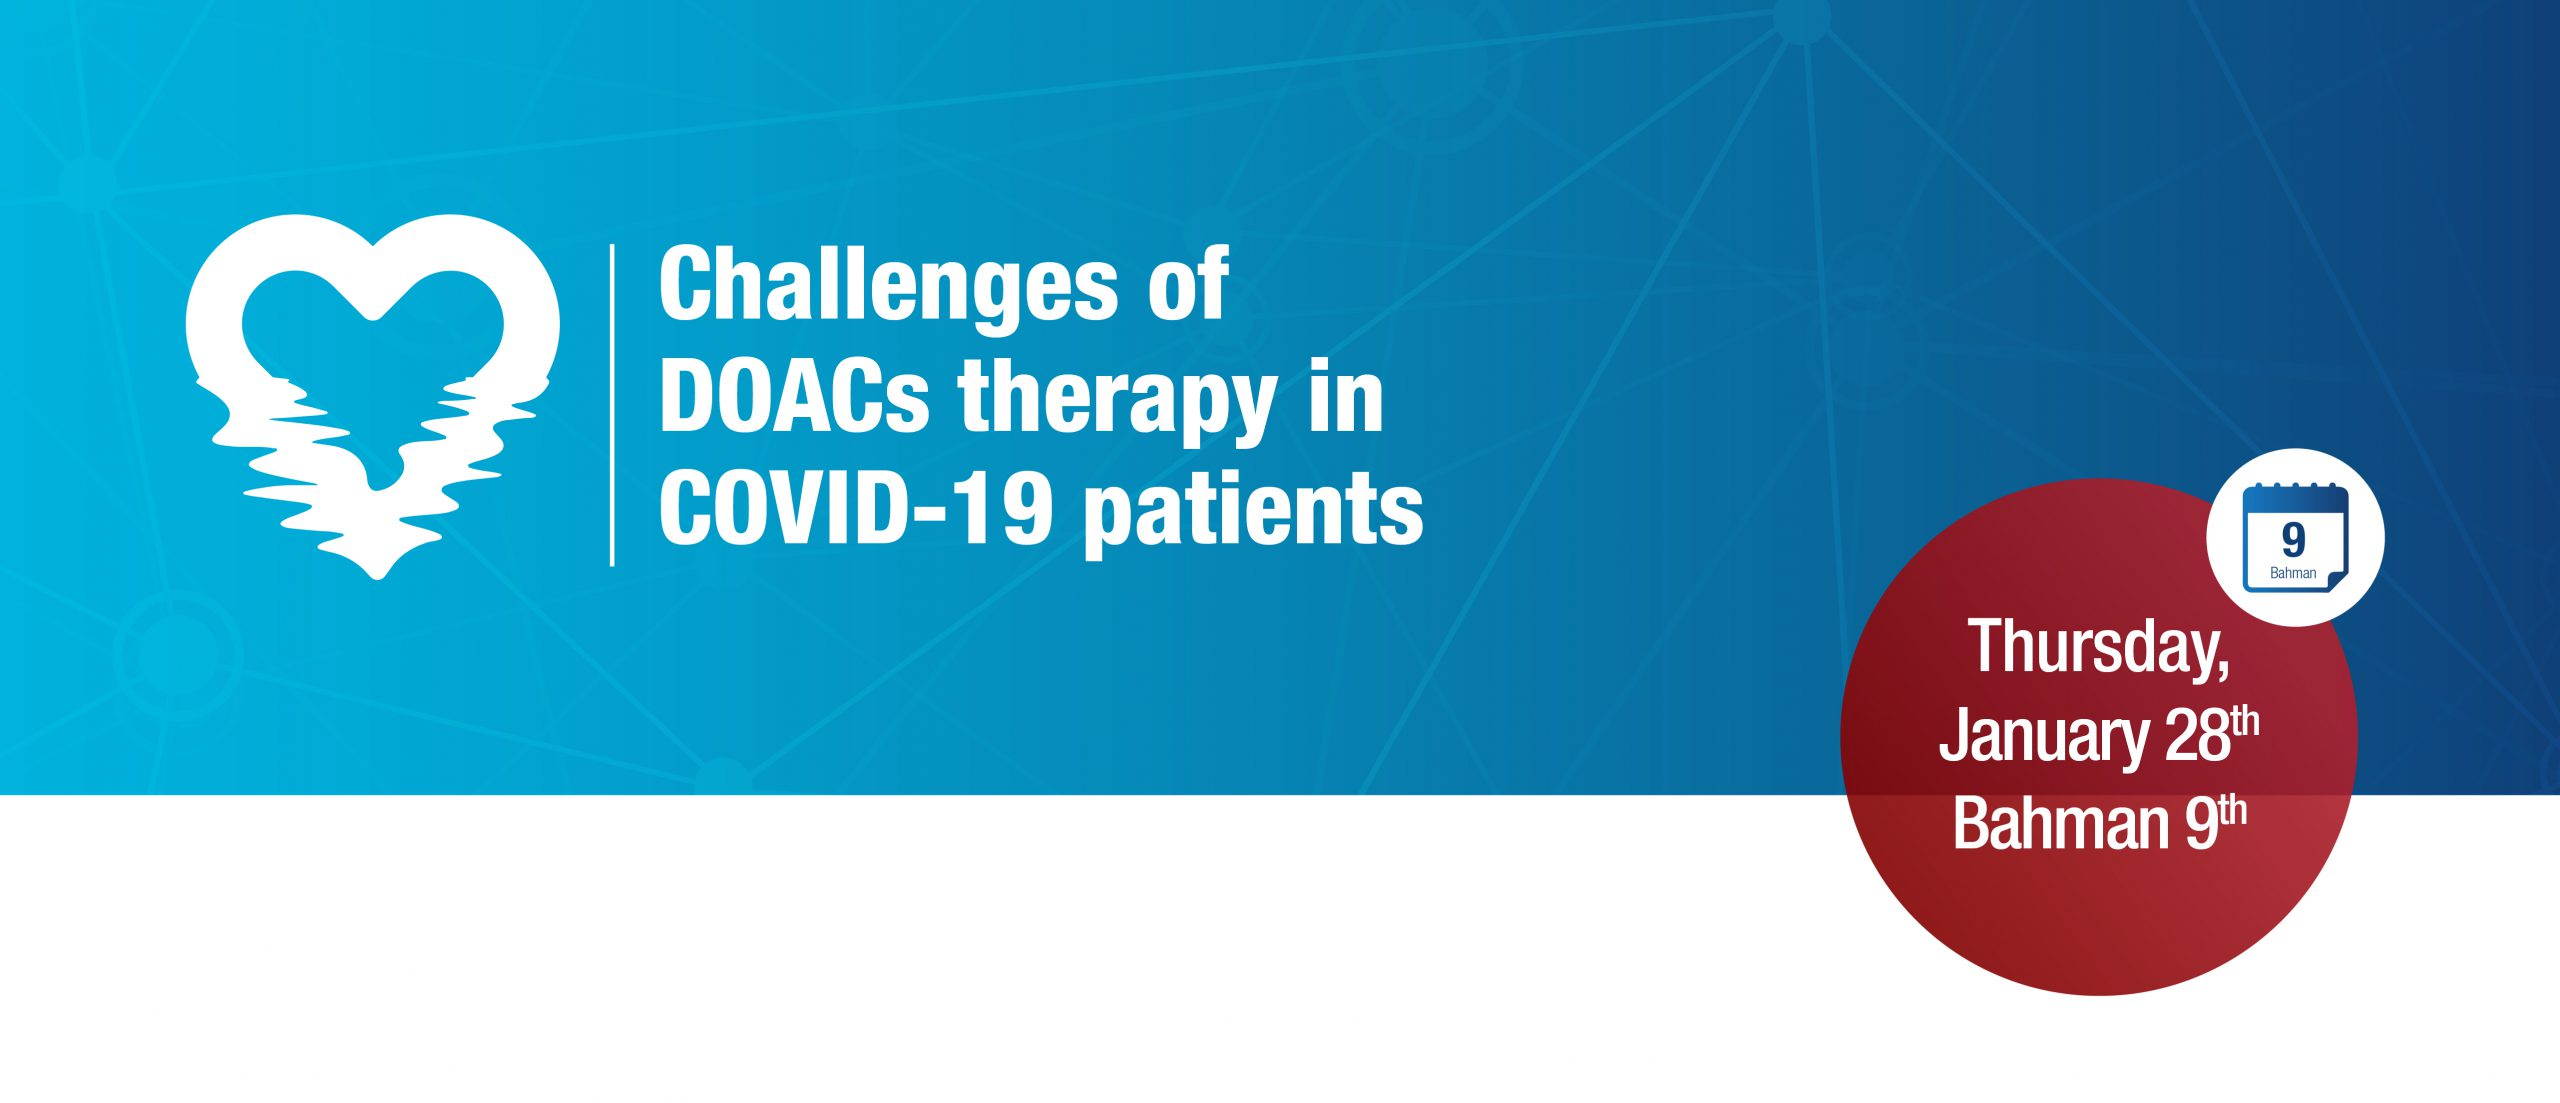 Challenges of DOAC Therapy in Covid-19 Patients